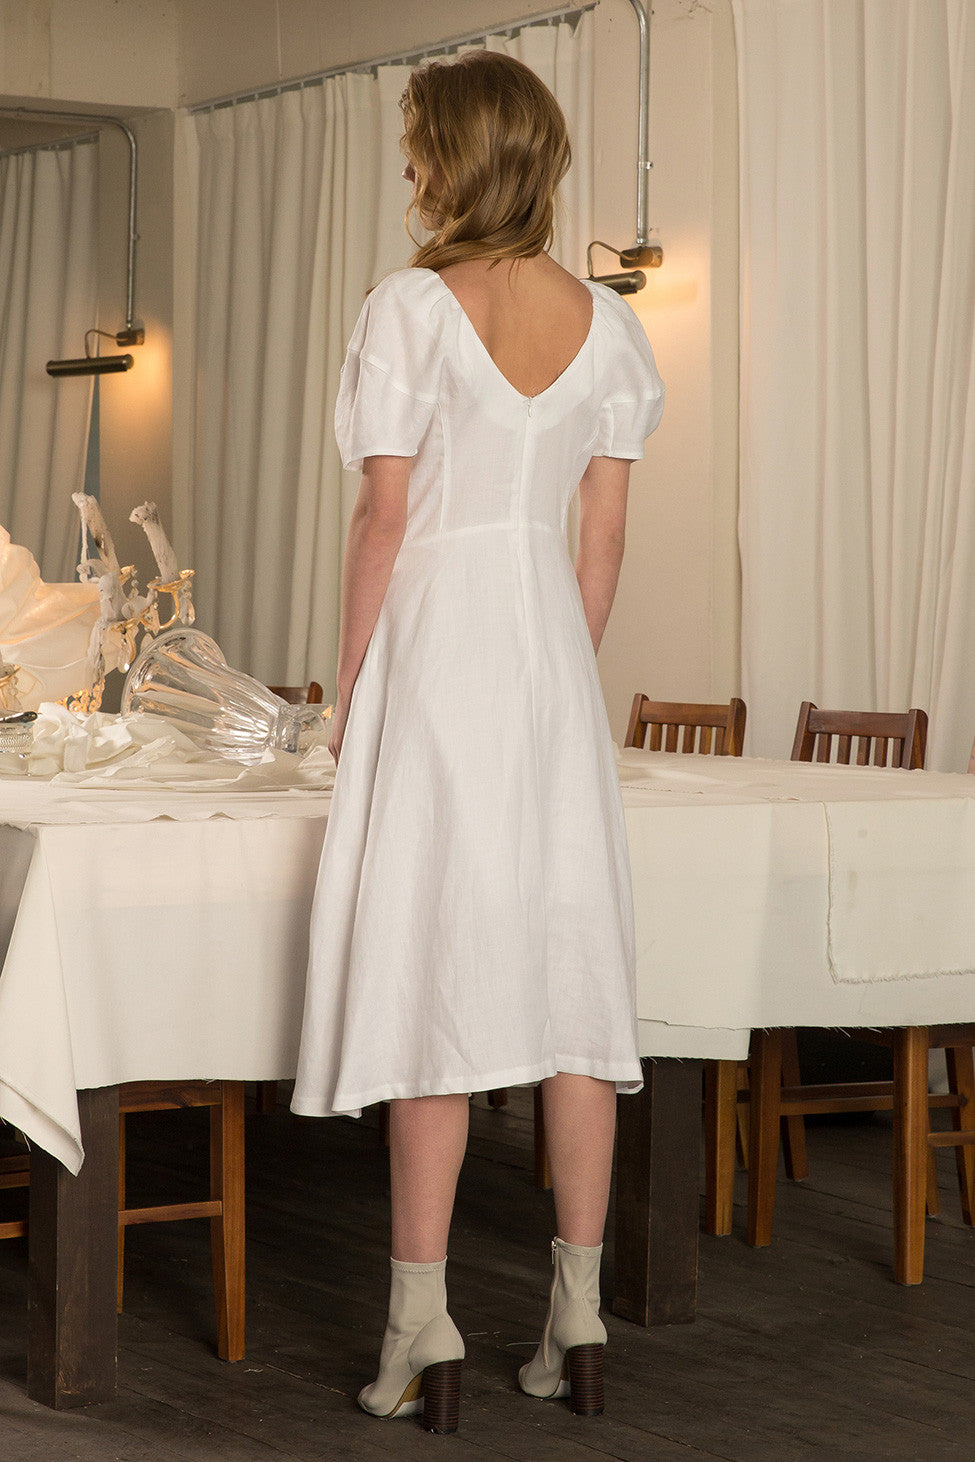 The Sylvie Dress in Off White, featuring raglan V-neckline at front and back, flared hem, puffs short sleeves, concealed zip fastening at the back. Fitted at waist.